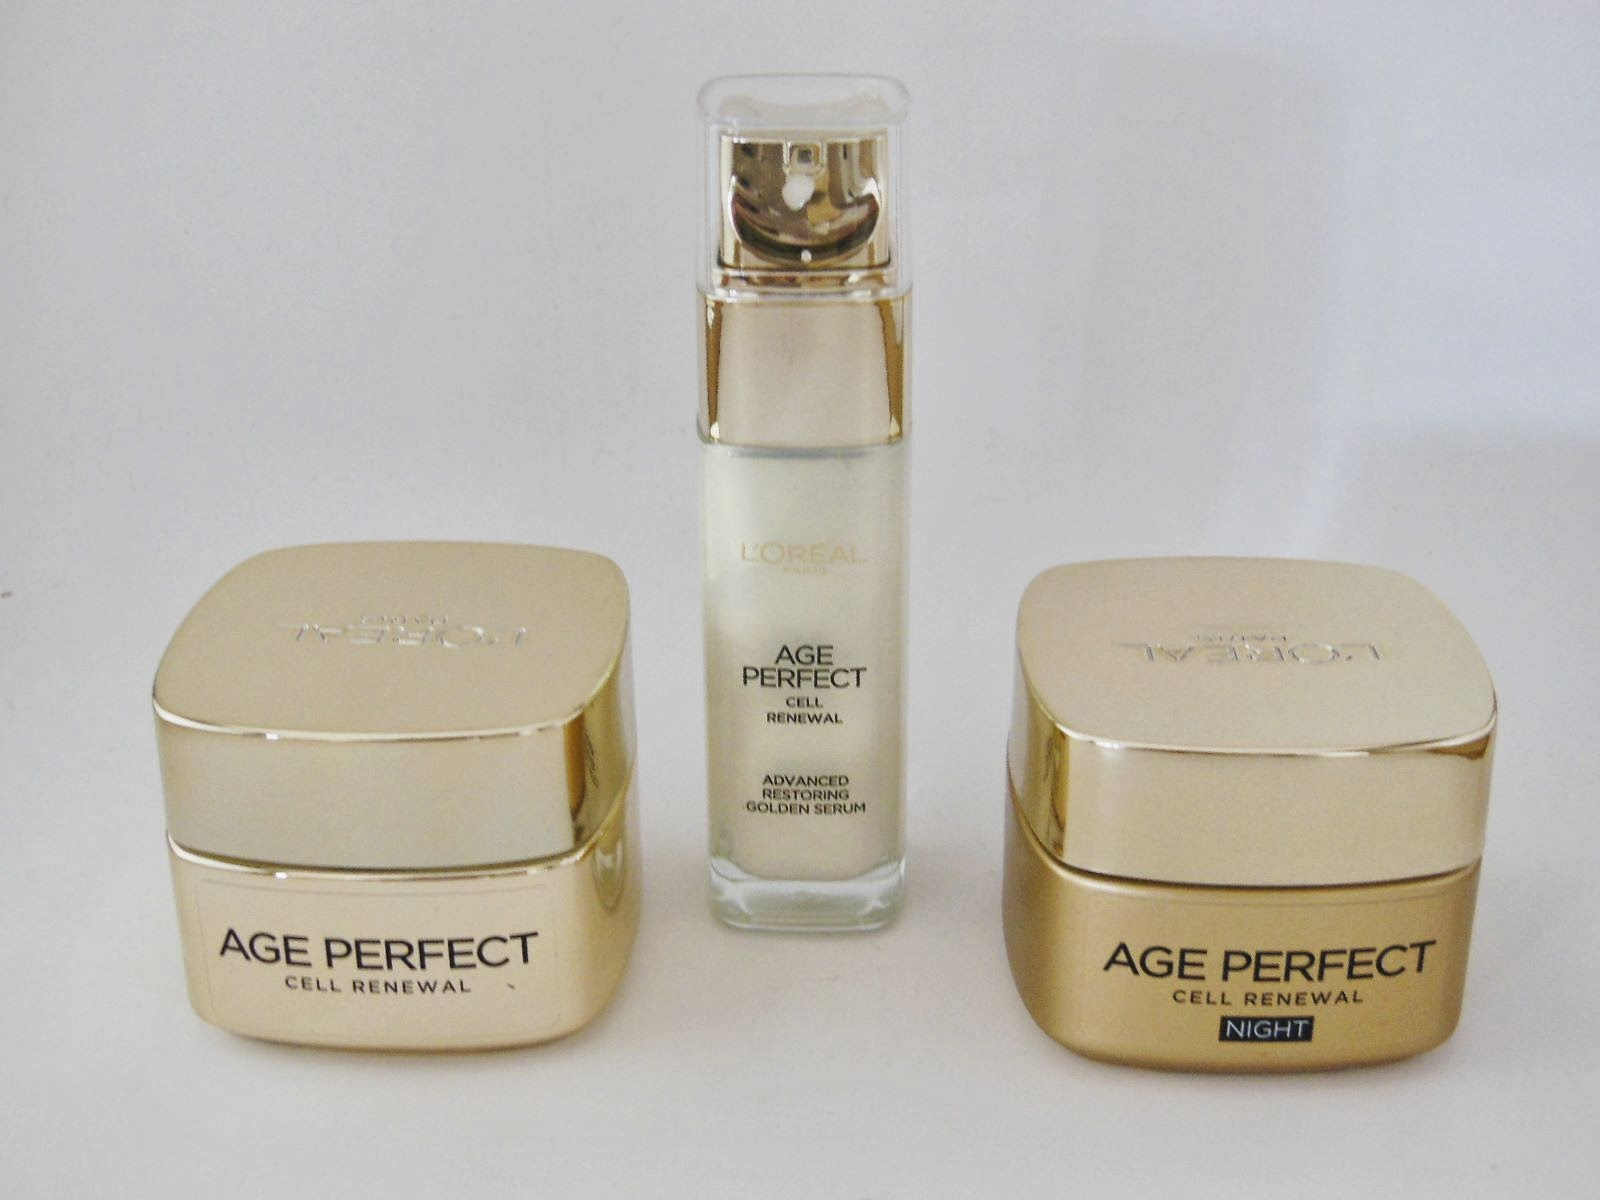 Product Review: L'Oreal Age Perfect Cell Renewal Serum, Day Cream